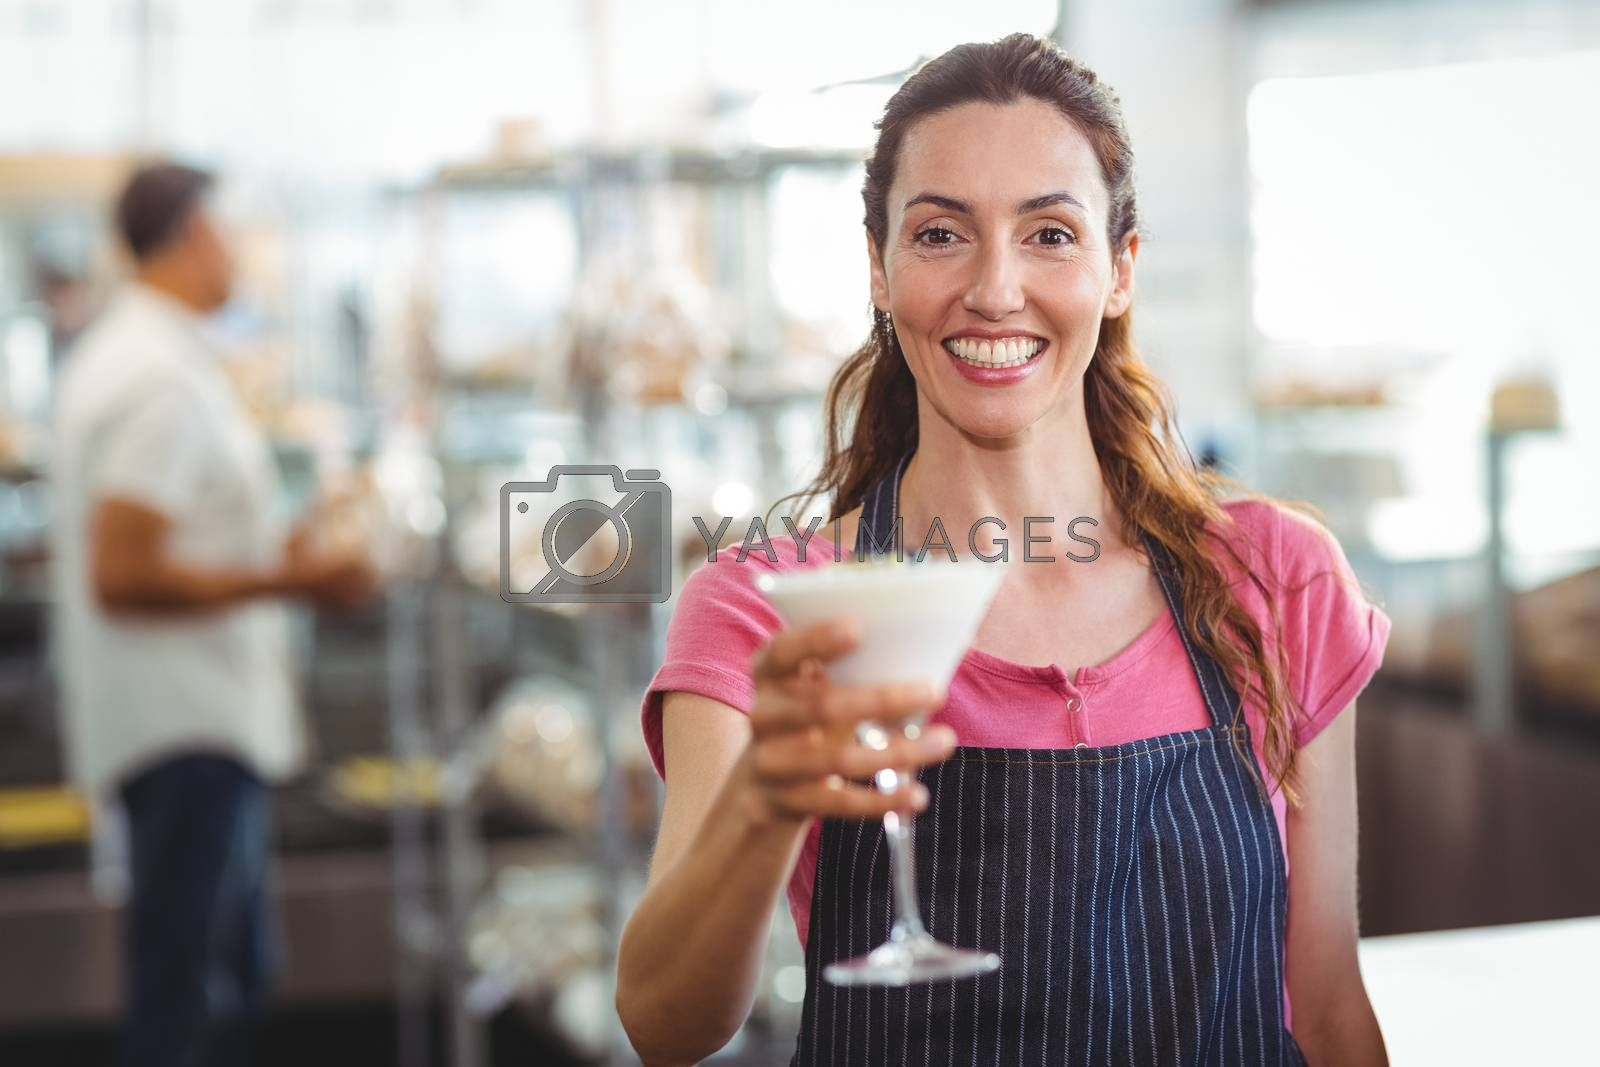 Royalty free image of worker offering a parfait by Wavebreakmedia